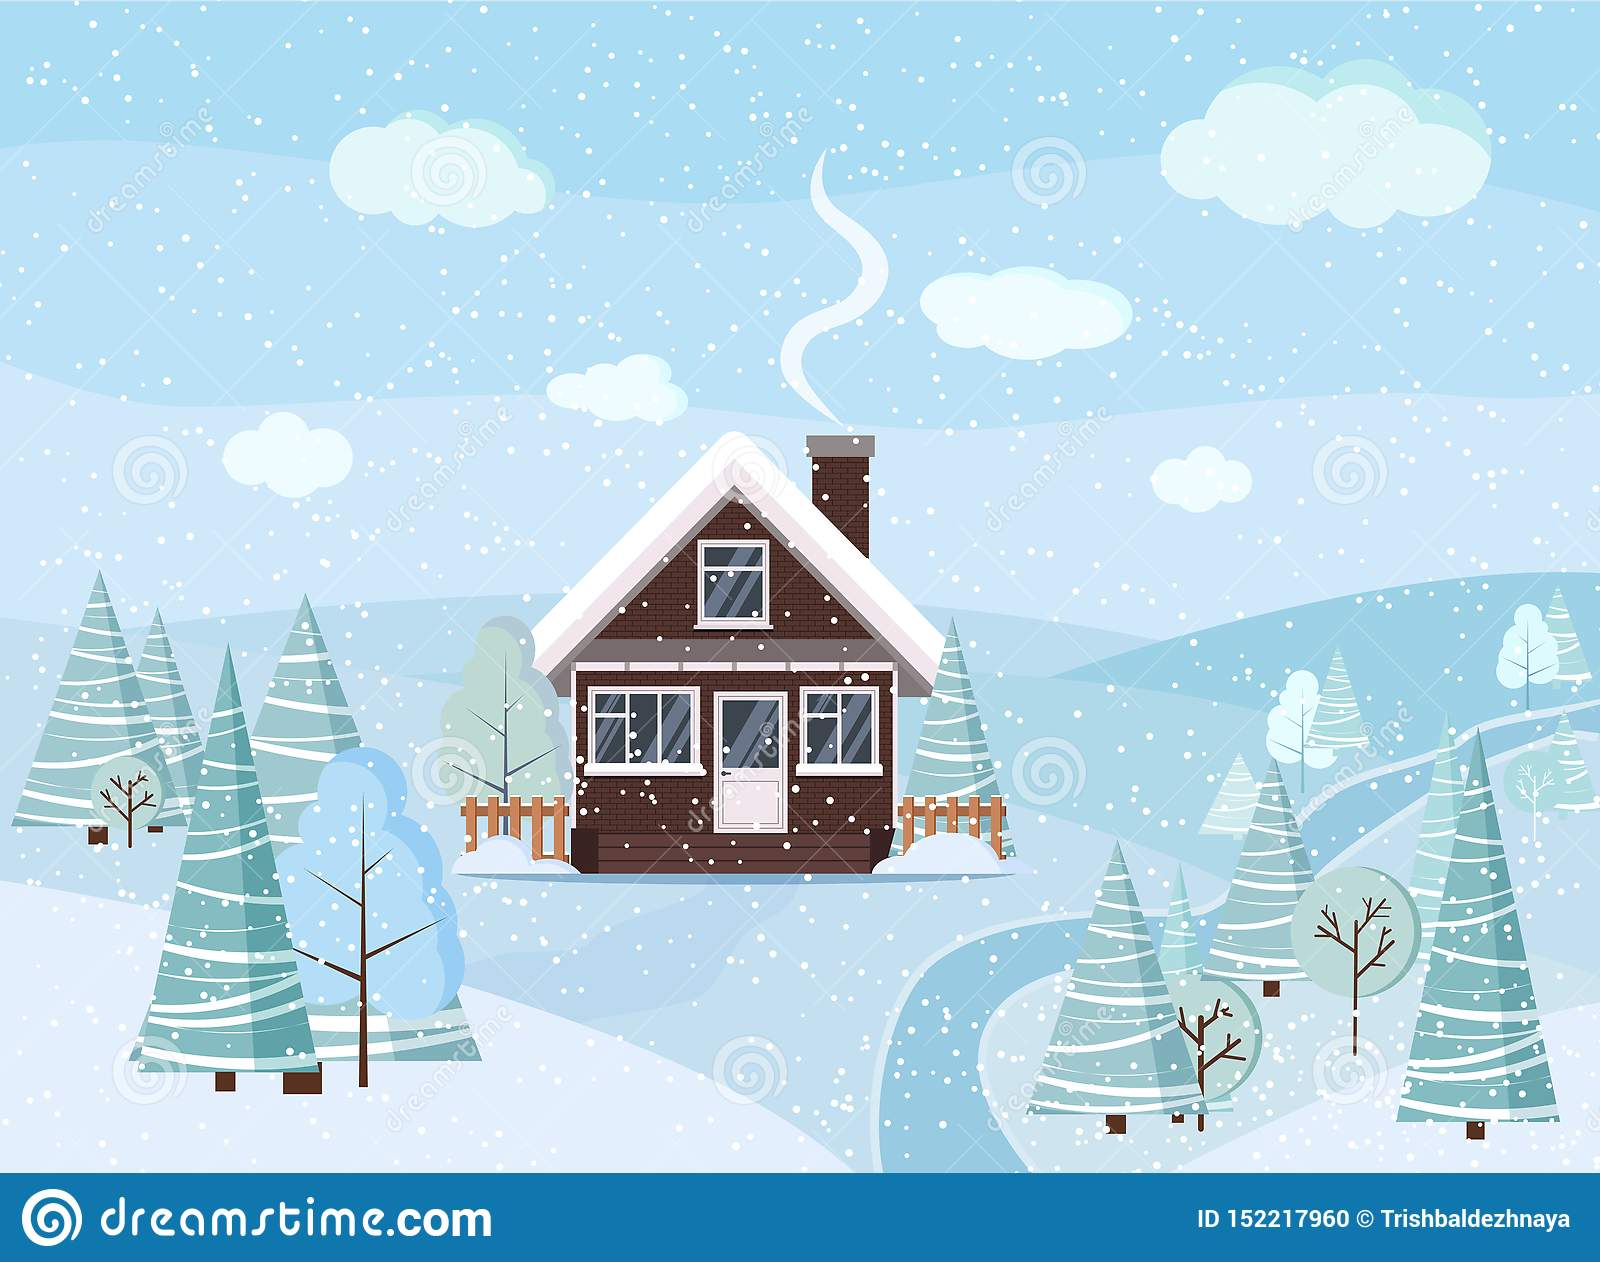 Winter snowy landscape scene with brick house, winter trees, spruces, clouds, river, snow, fields in cartoon flat style, Christmas